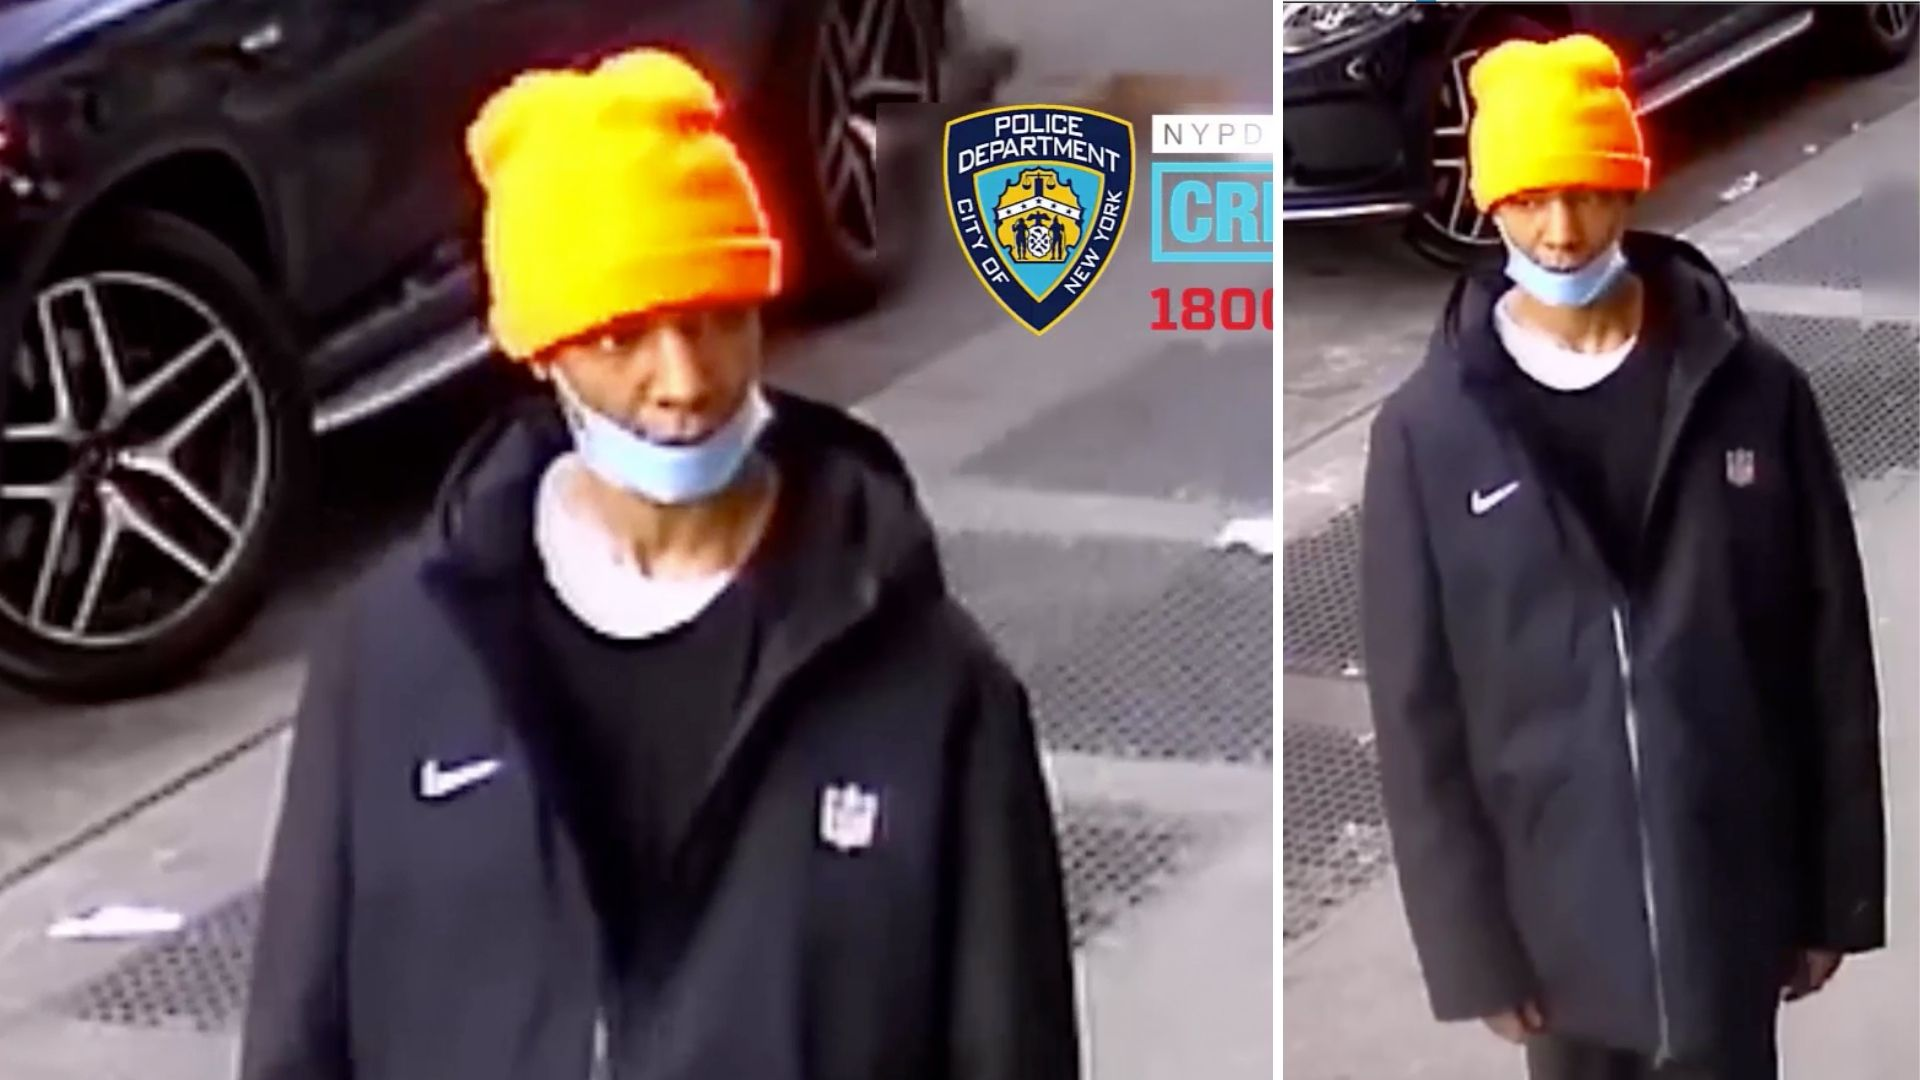 Surveillance images of a man wanted in connection with an attempted rape in East Harlem on March 10, 2021, police say. (NYPD)